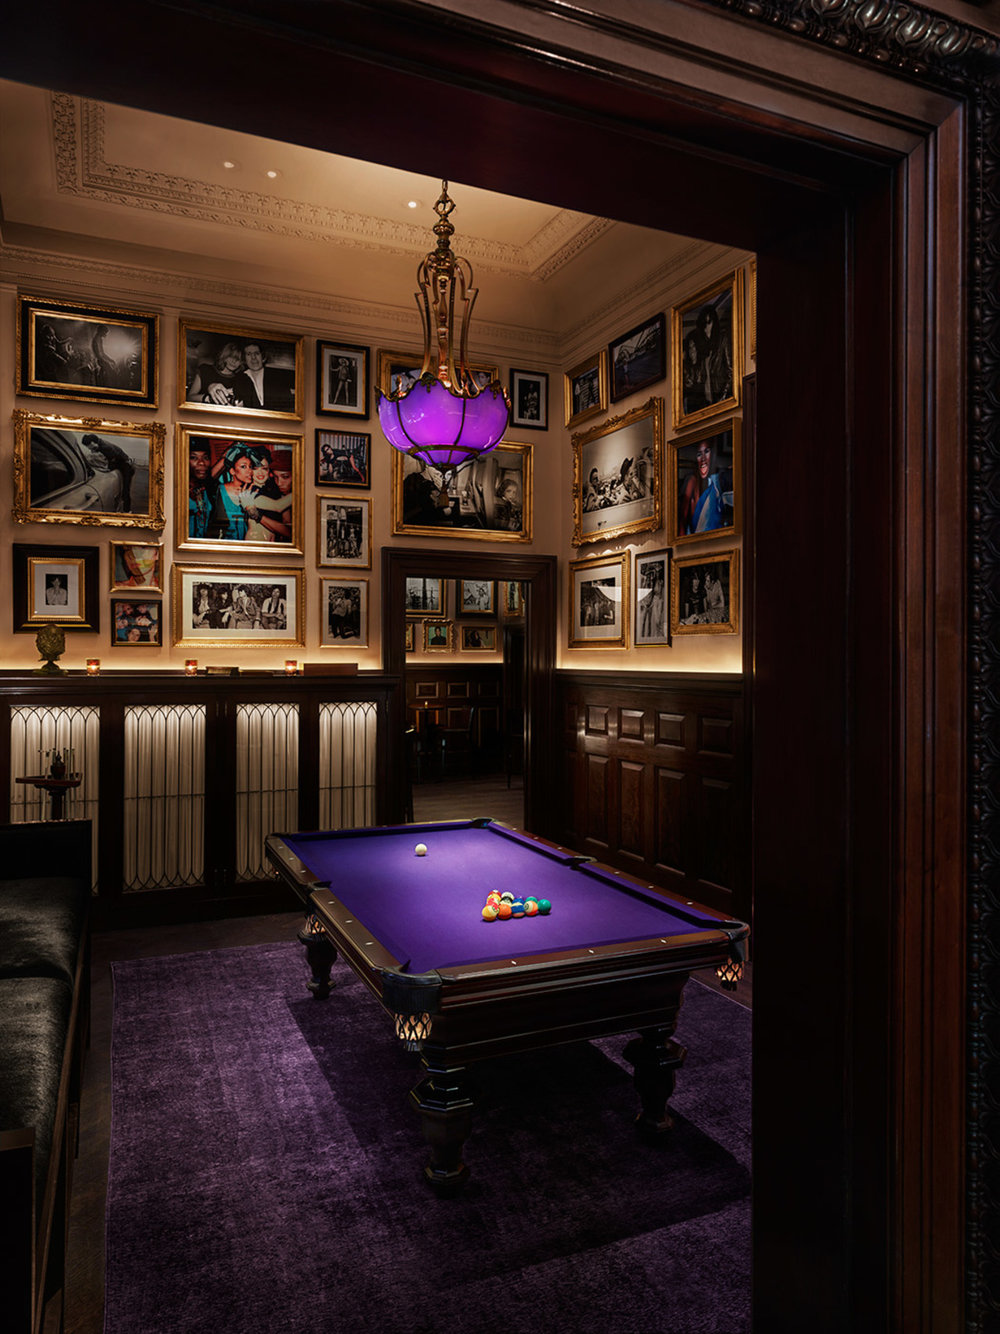 The-Clocktower-Billard-Room-1049x1400.jpg